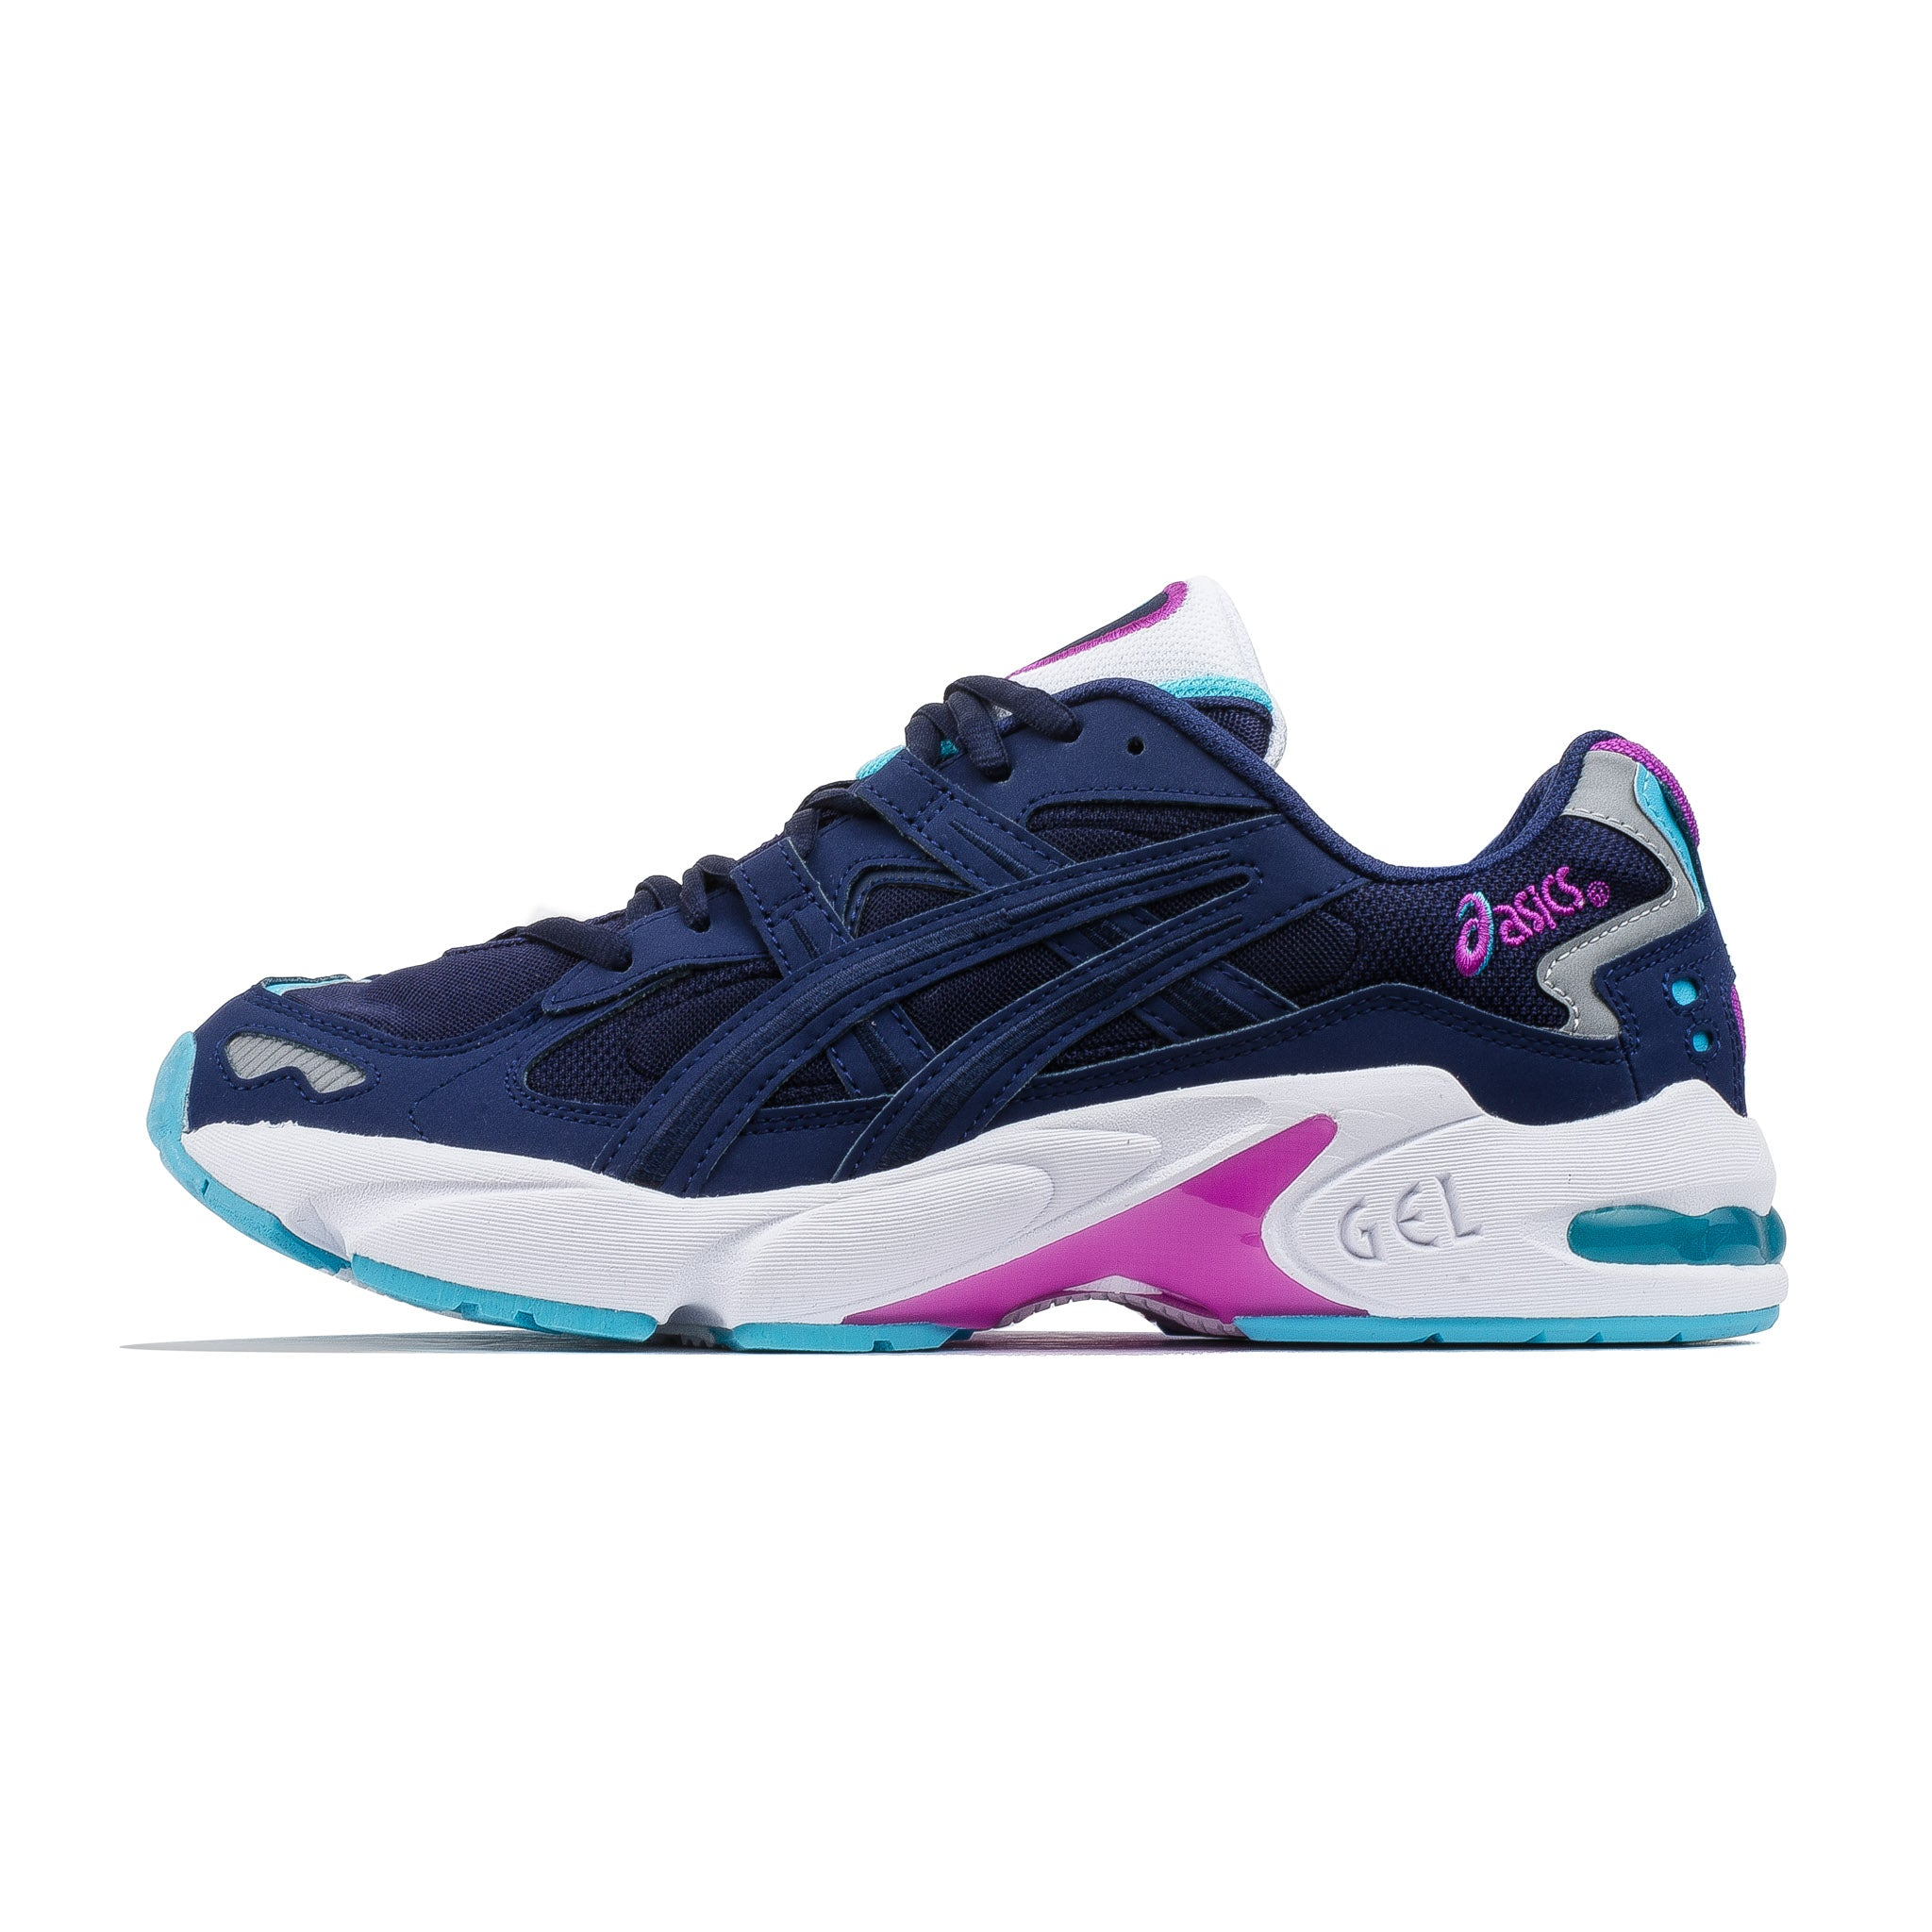 Gel Kayano 5 OG 1191A149 400 Peacoat